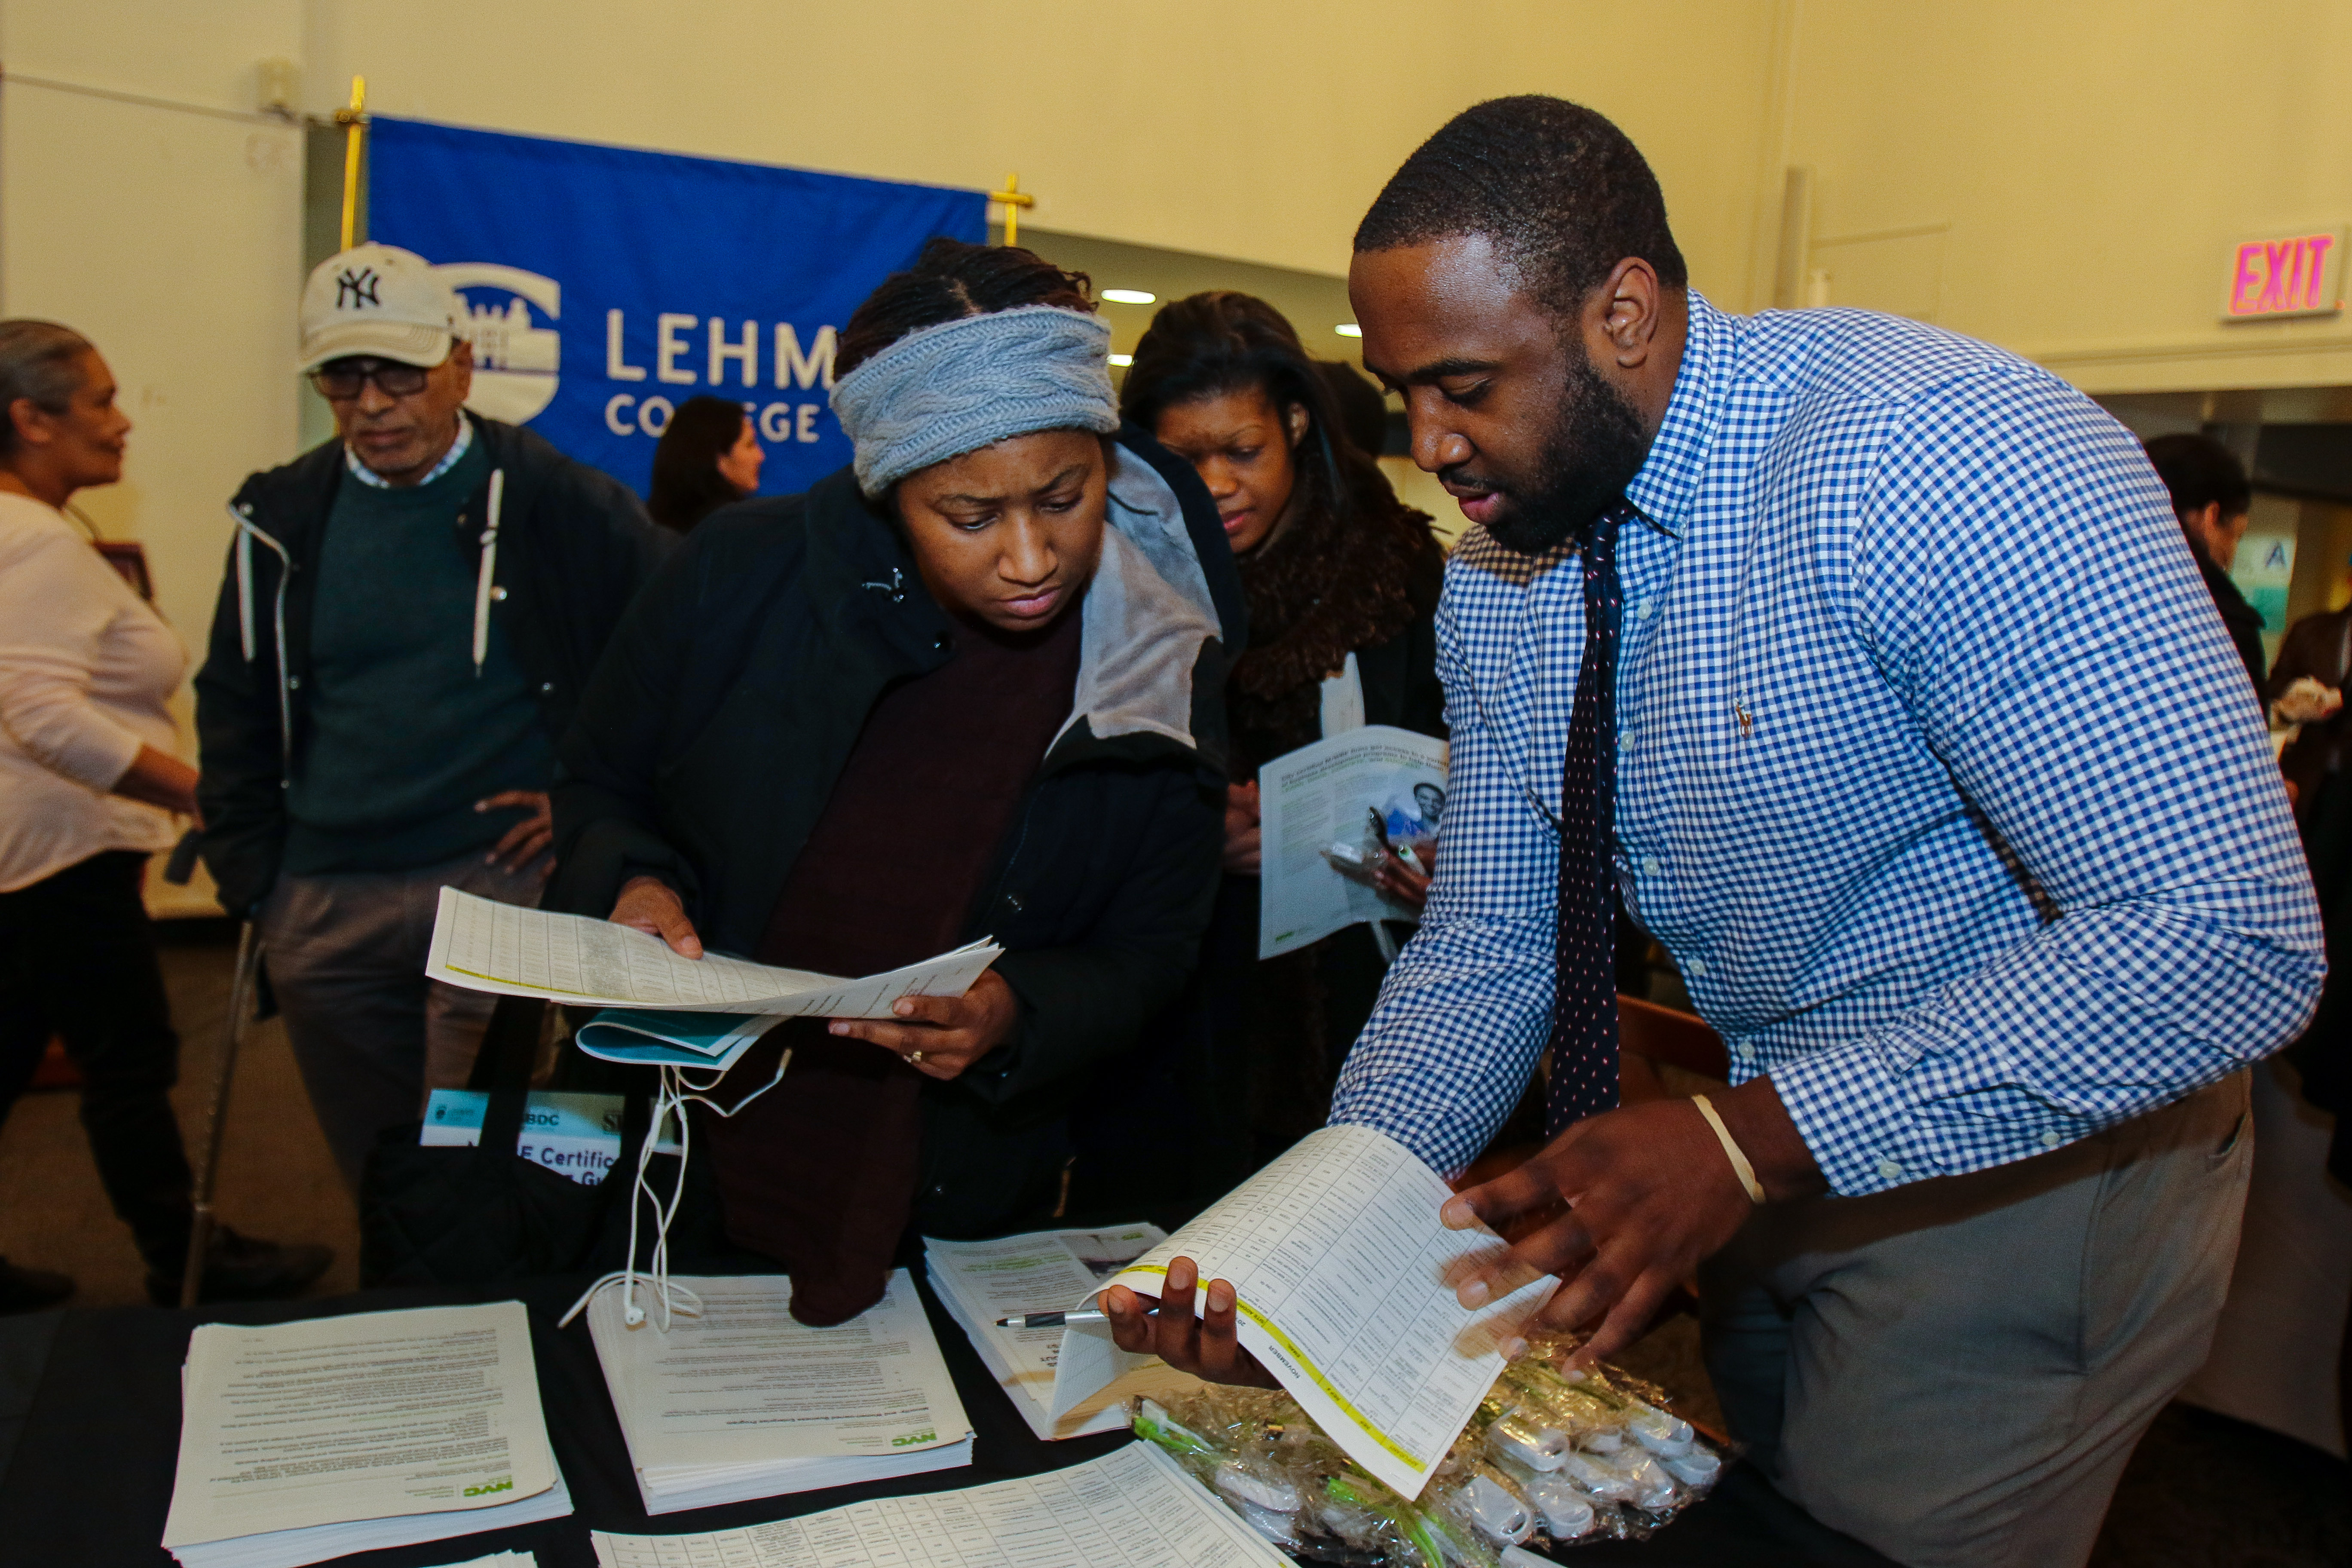 Man showing a woman resource information at an event for businesses